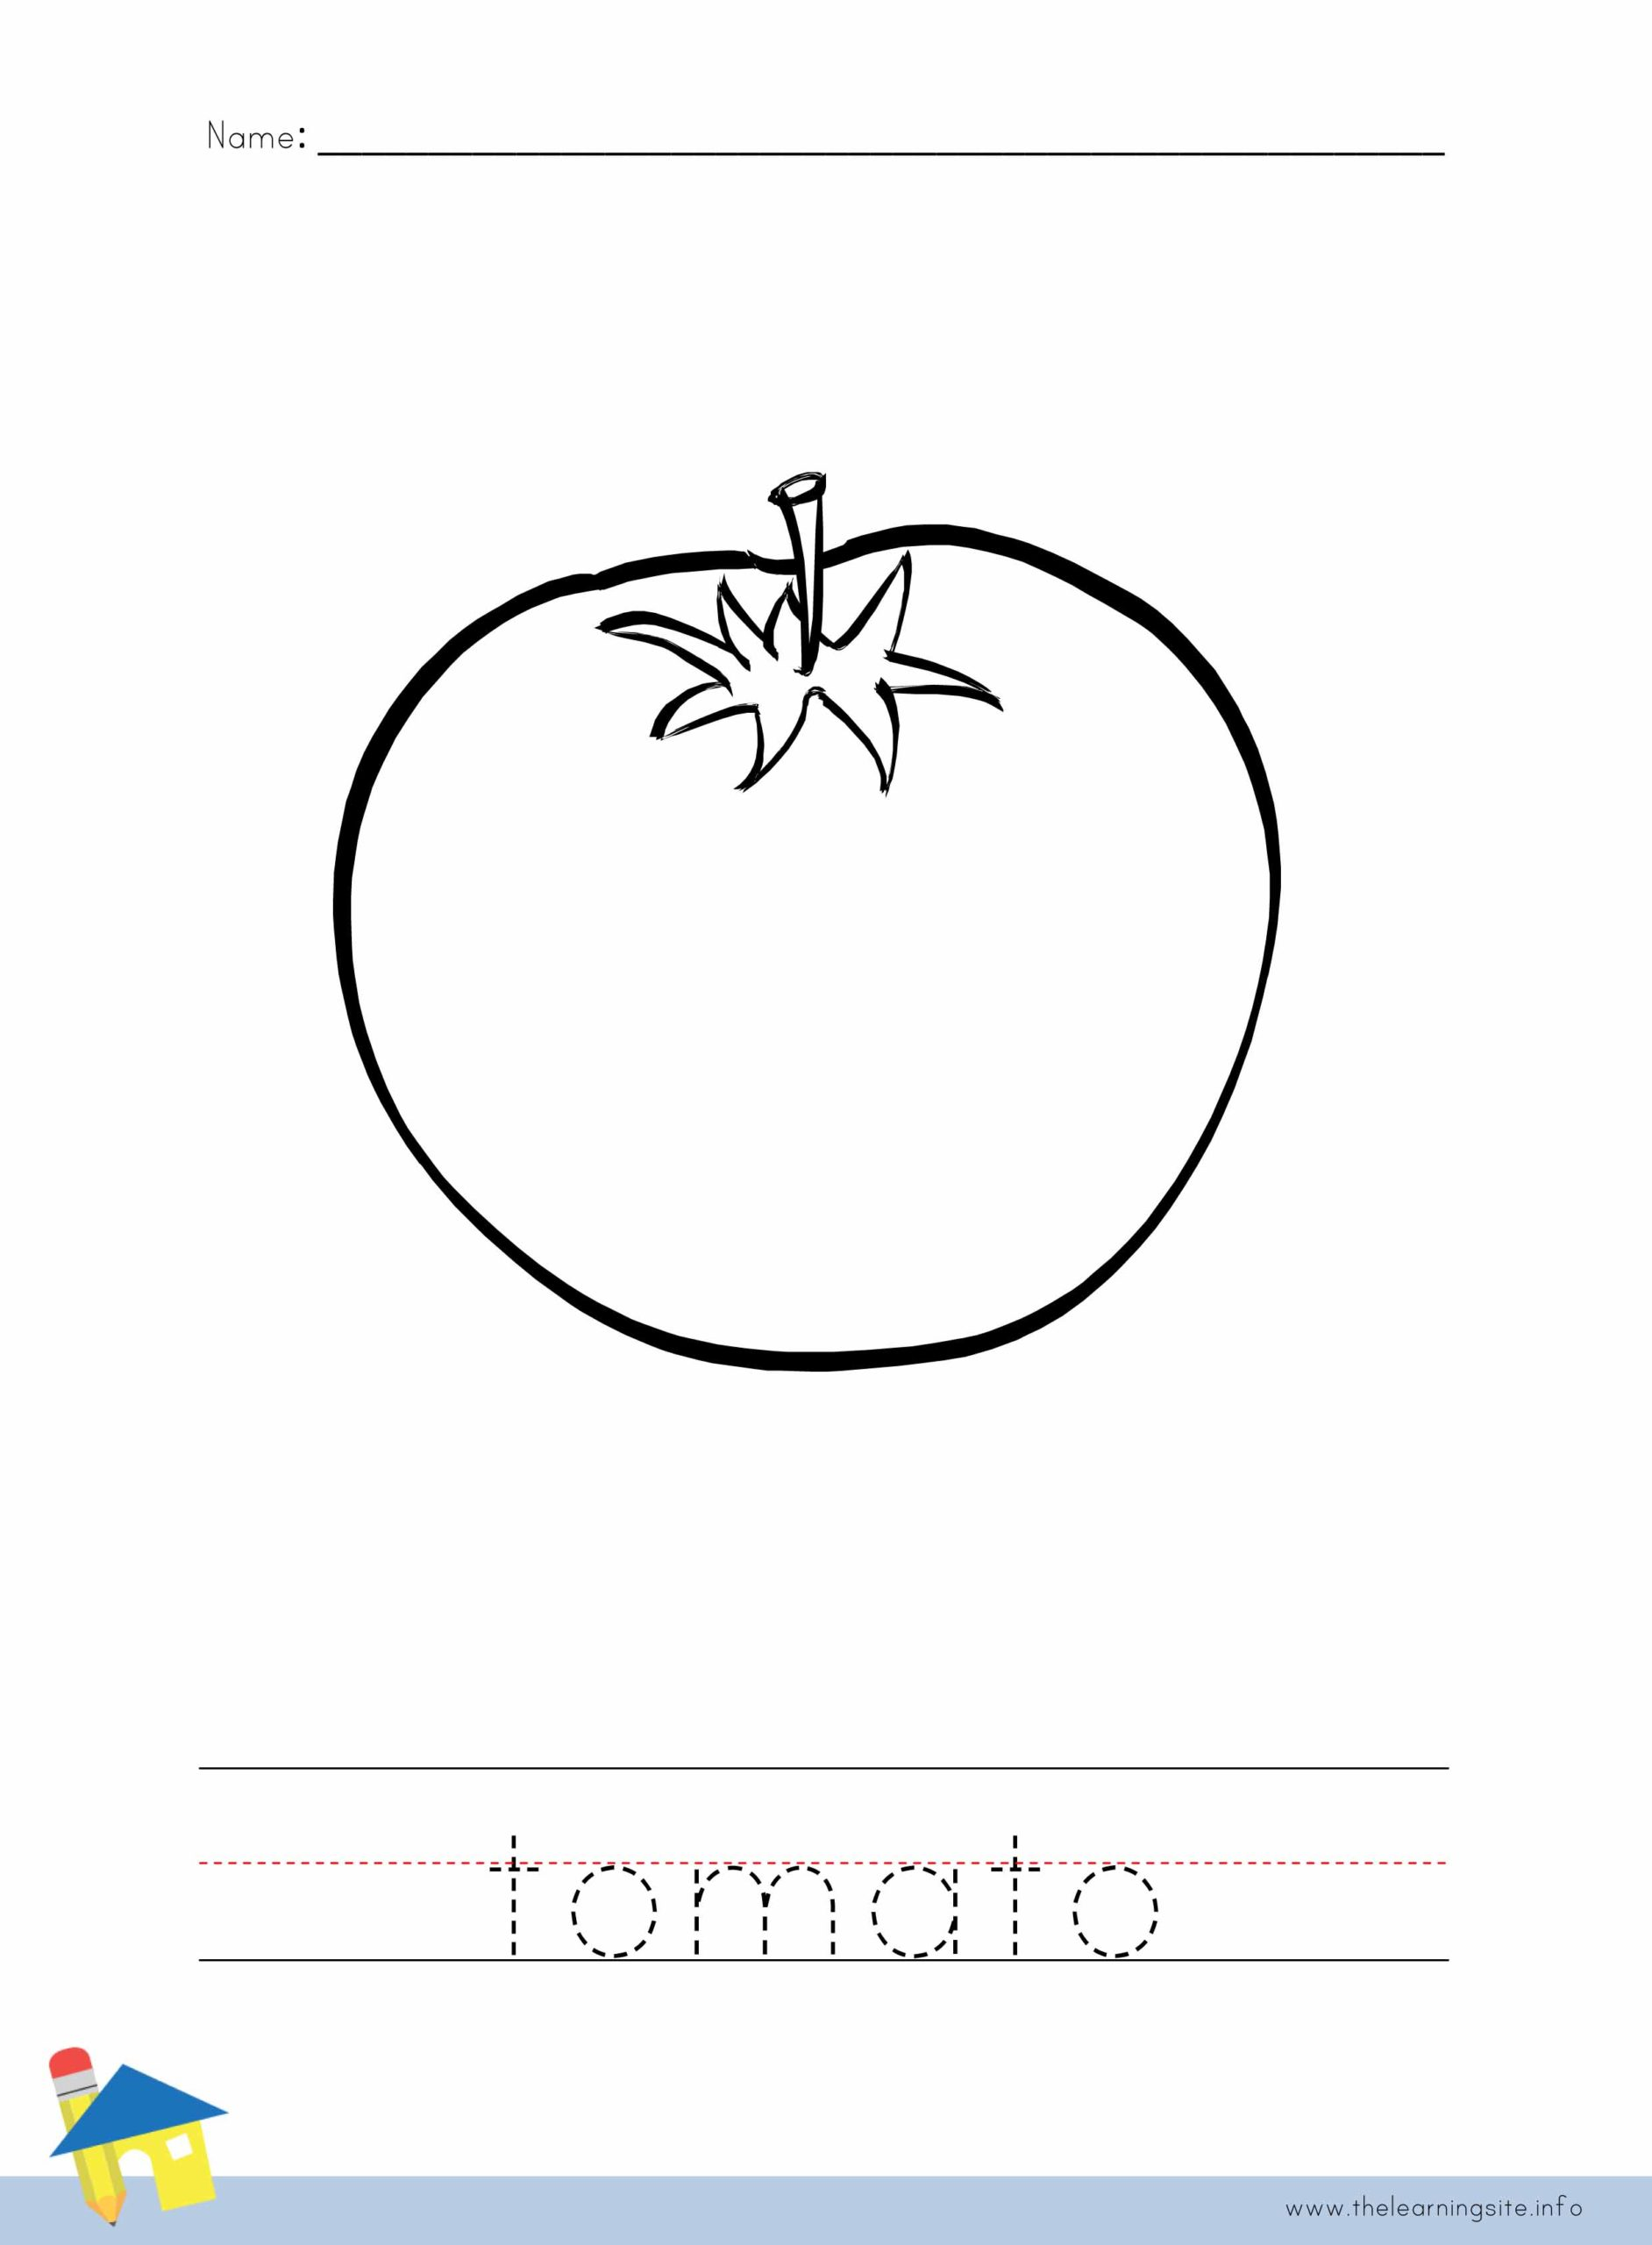 Tomato Coloring Worksheet The Learning Site